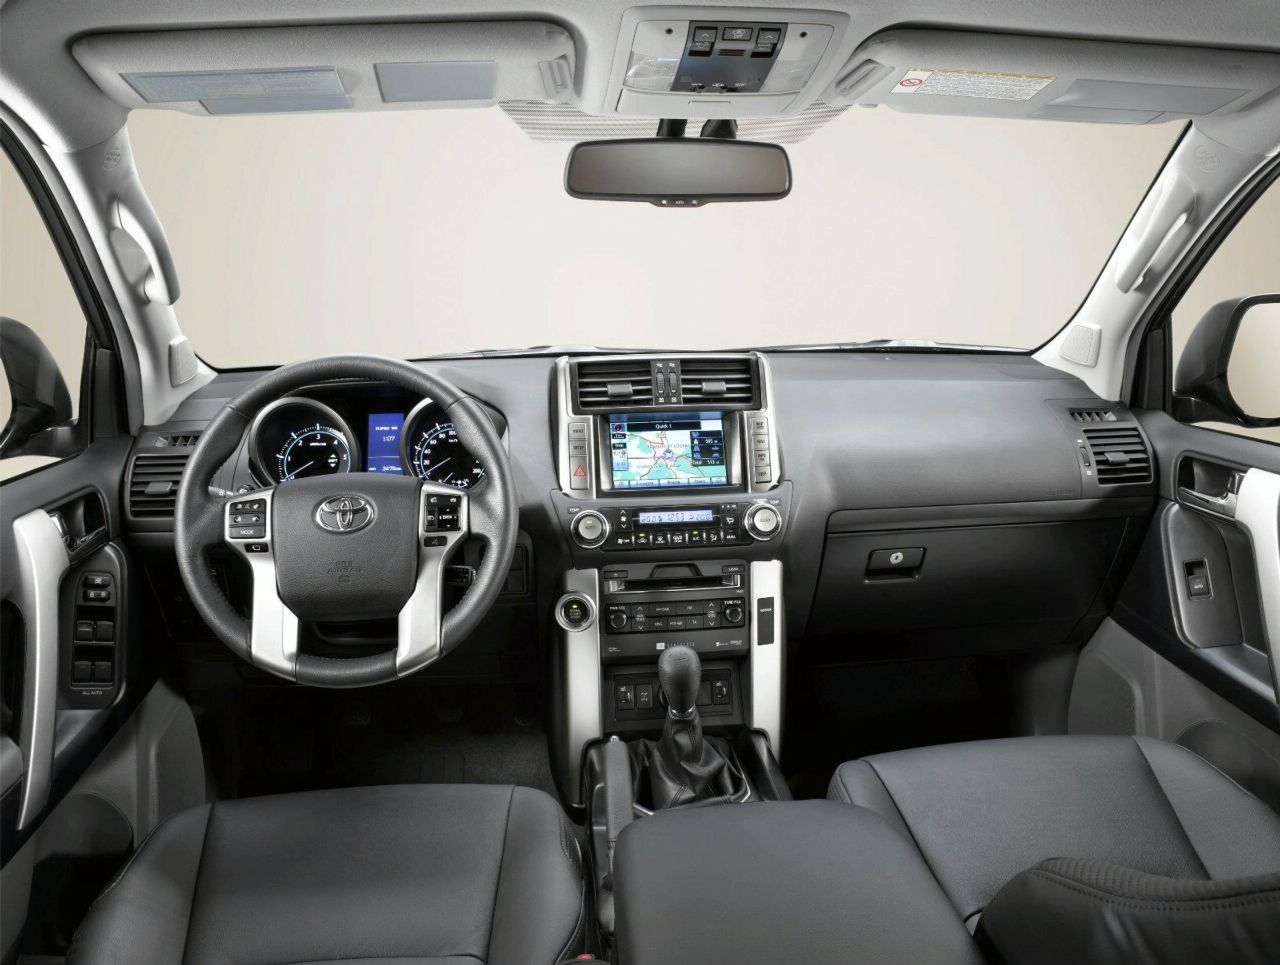 Toyota Land Cruiser 2010 Interior Img 9 It S Your Auto World New Cars Auto News Reviews